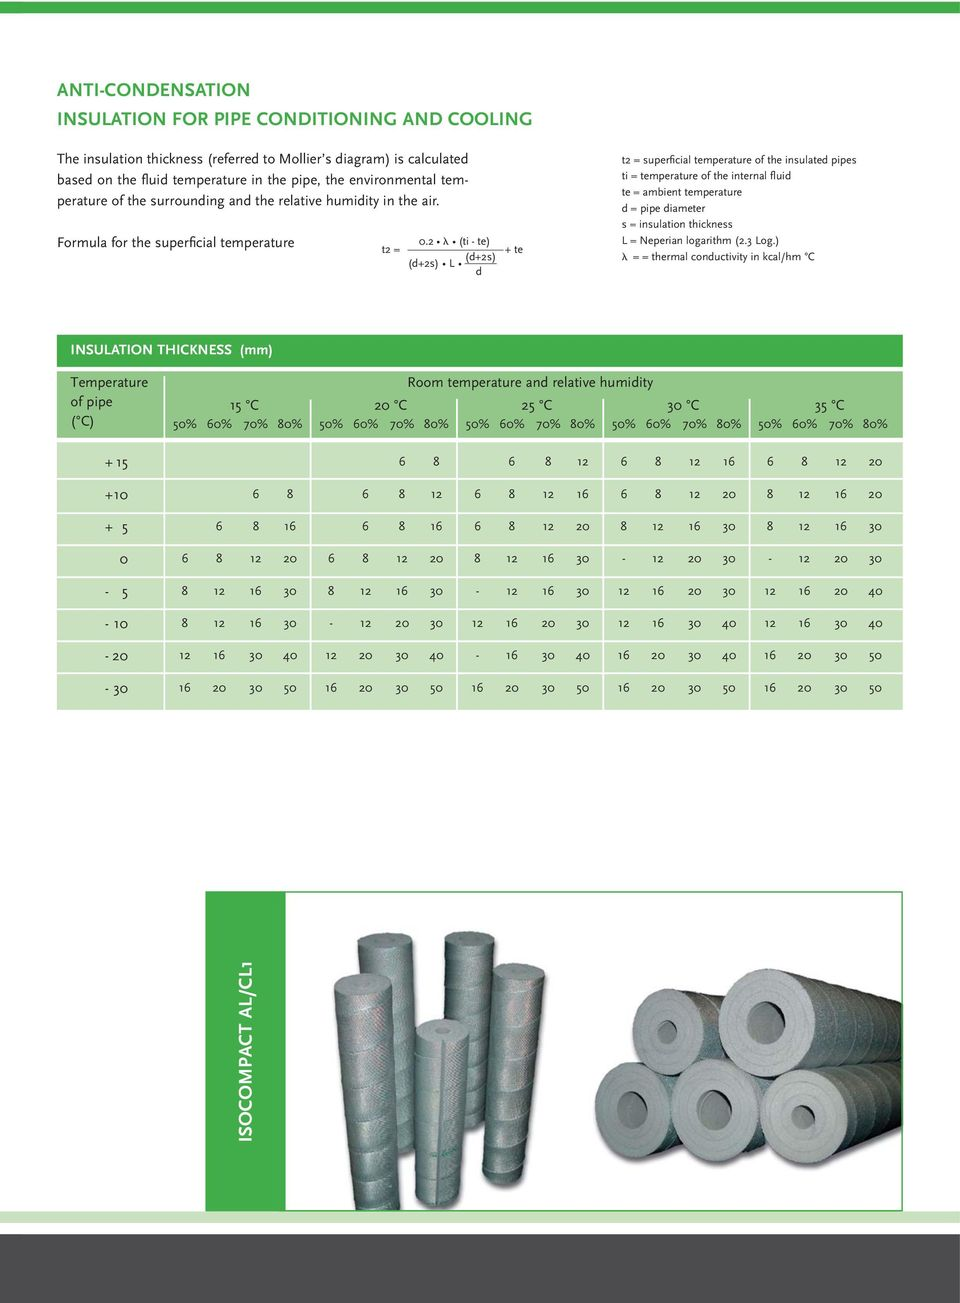 2 (ti te) t2 = (d+2s) L (d+2s) d + te t2 = superficial temperature of the insulated pipes ti = temperature of the internal fluid te = ambient temperature d = pipe diameter s = insulation thickness L